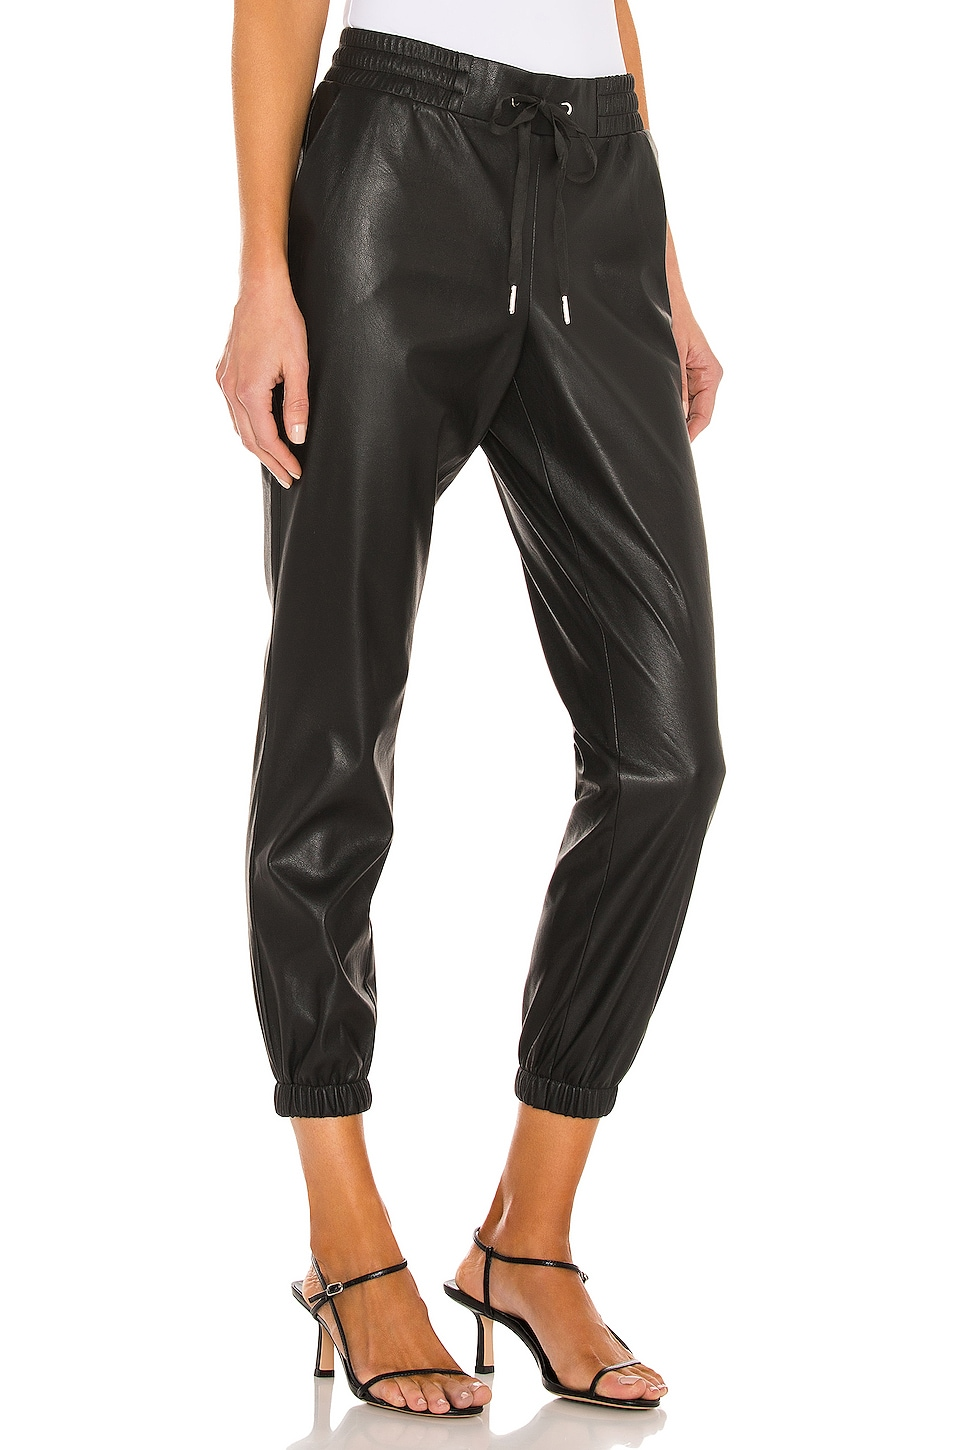 Scarlett Leather Jogger, view 2, click to view large image.